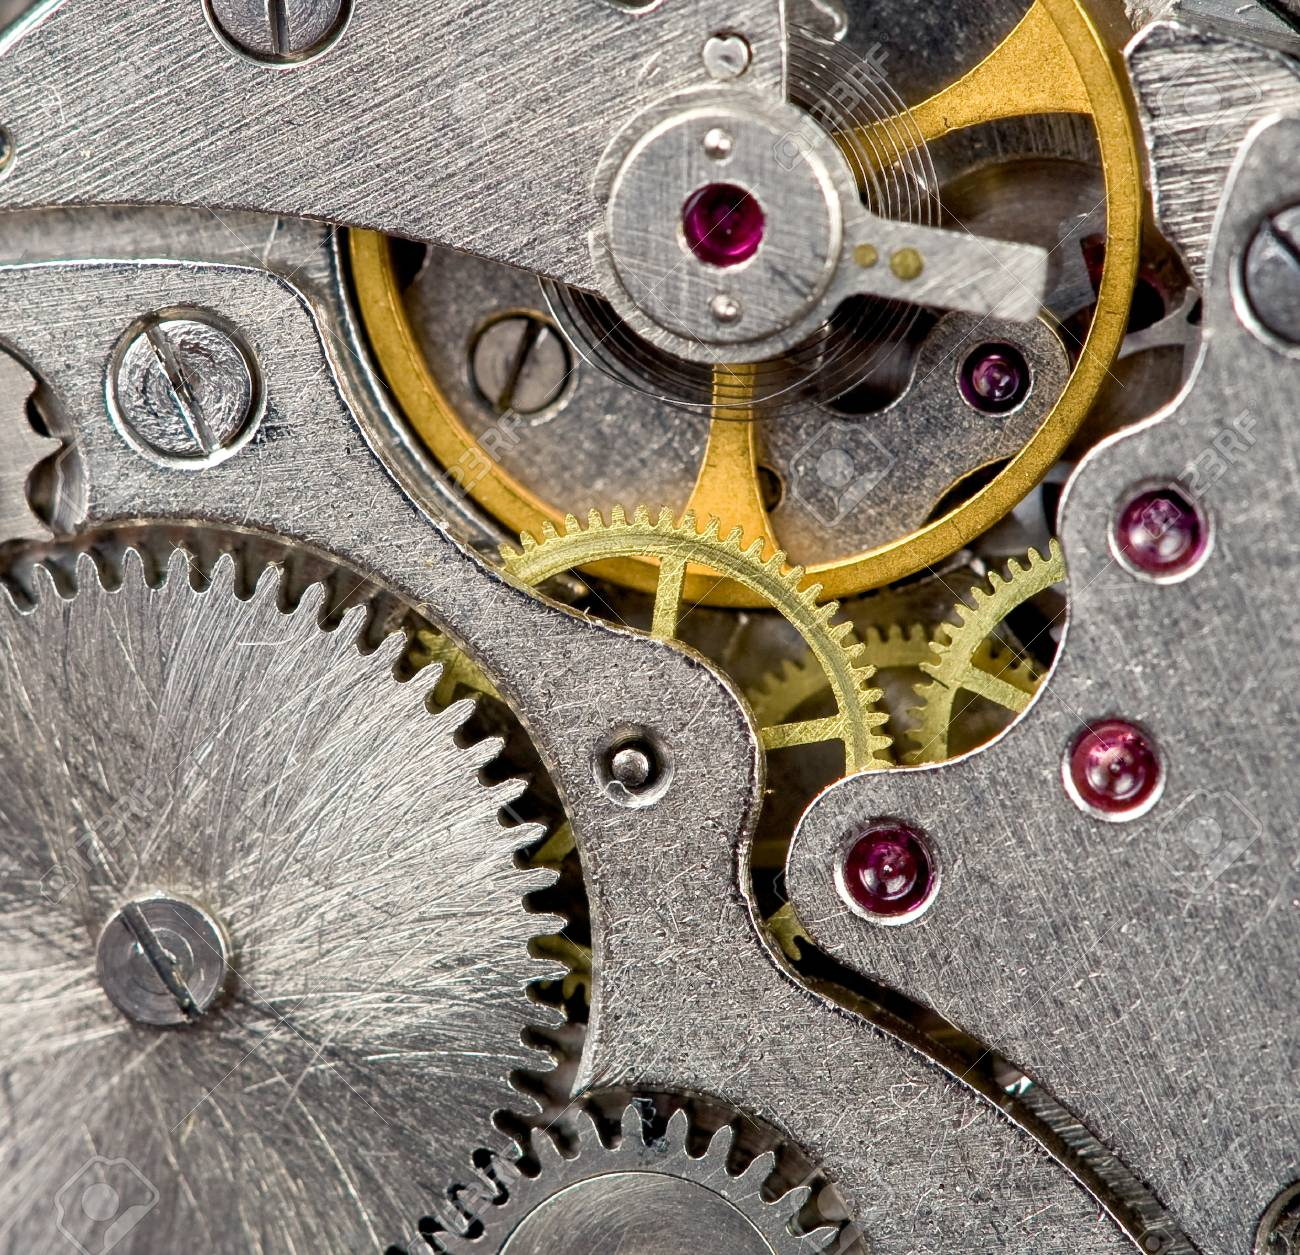 mechanism of old mechanical watch close up Stock Photo - 9557058